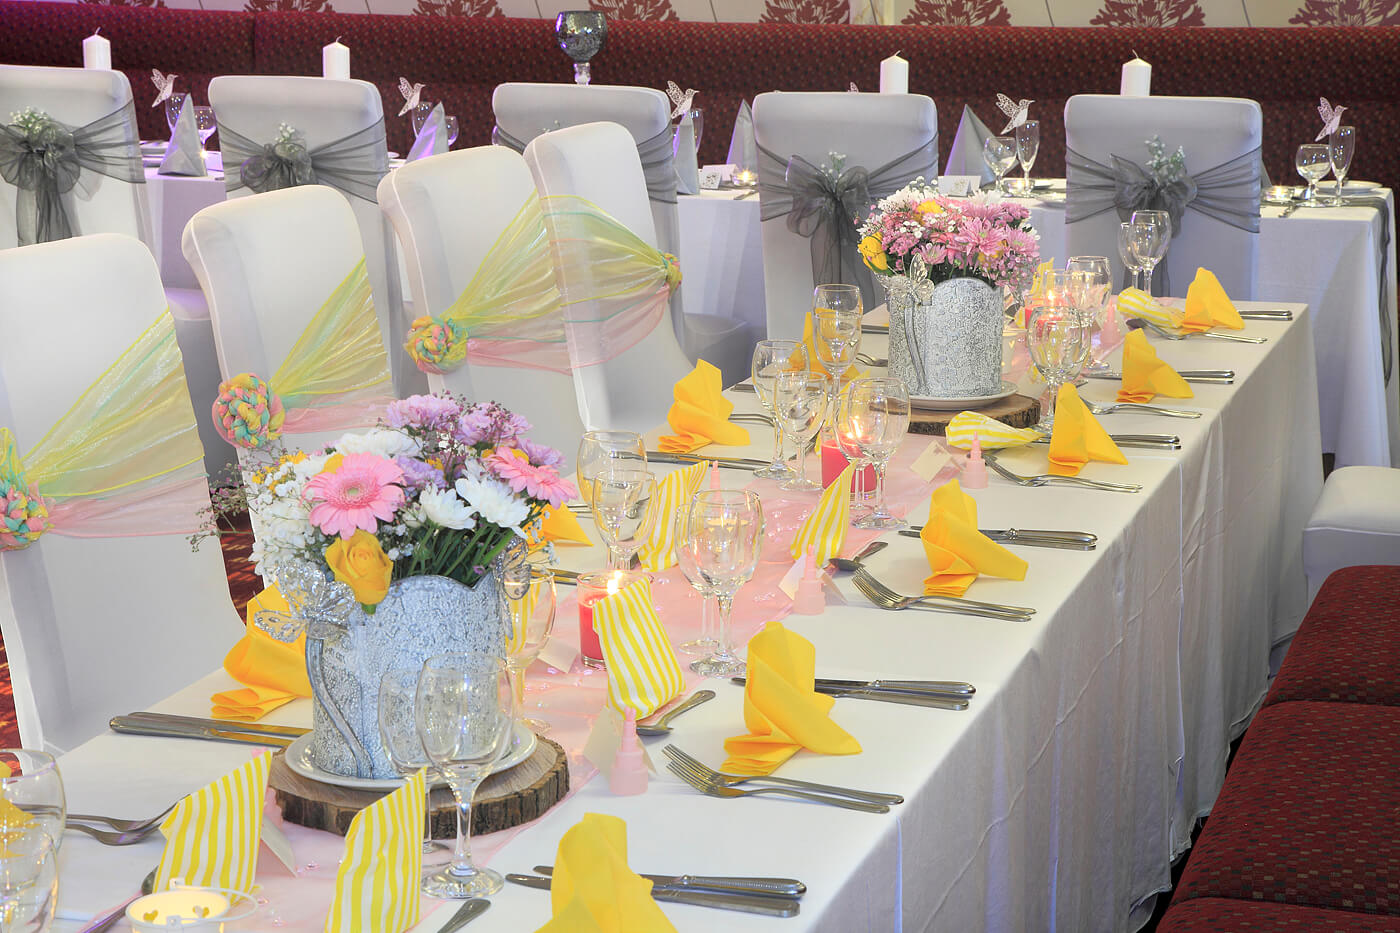 Wedding breakfast table setting, centering flowers